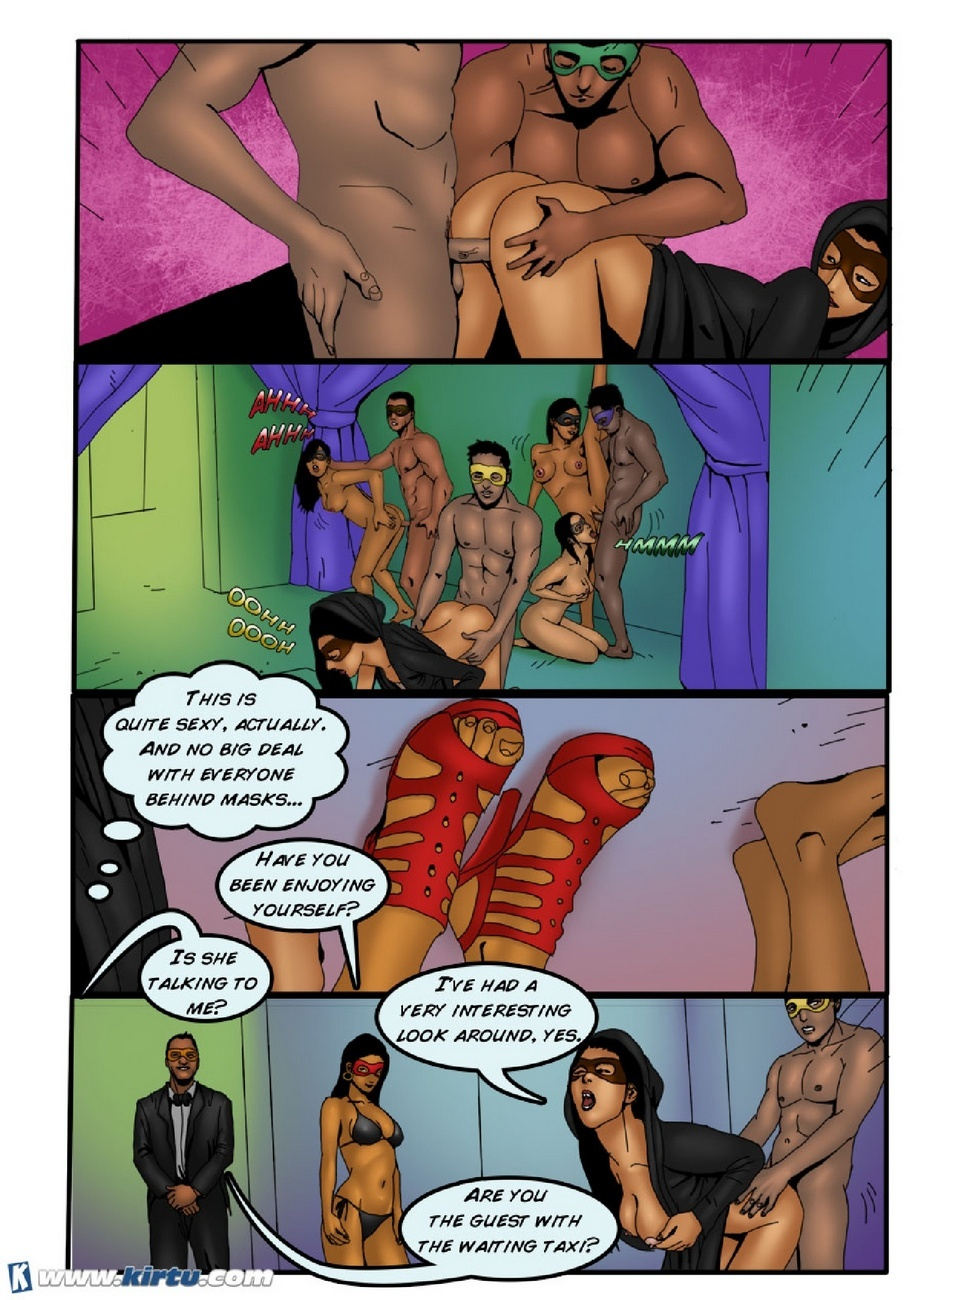 Saath-Kahaniya-10-The-Game20 free sex comic